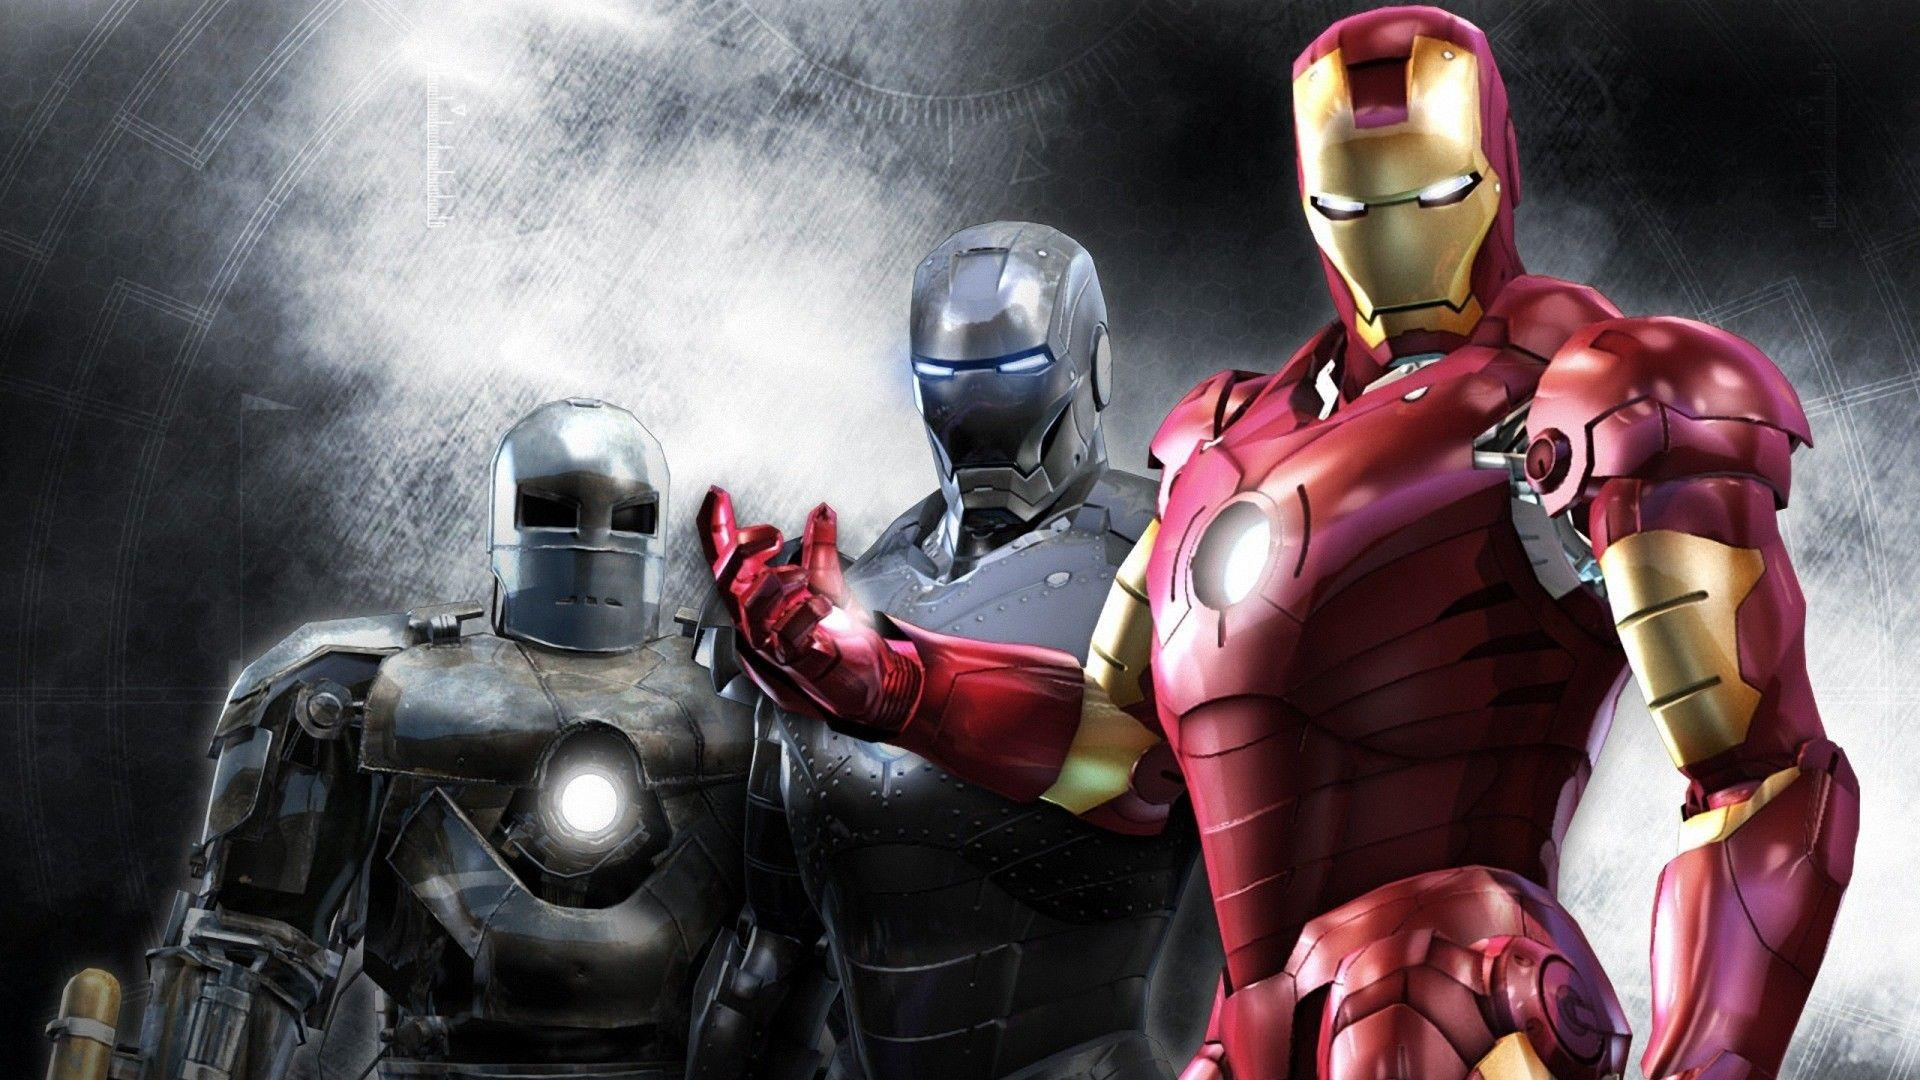 Iron Man 3 Hd Wallpapers 1080p For Android Wallpaper Cave